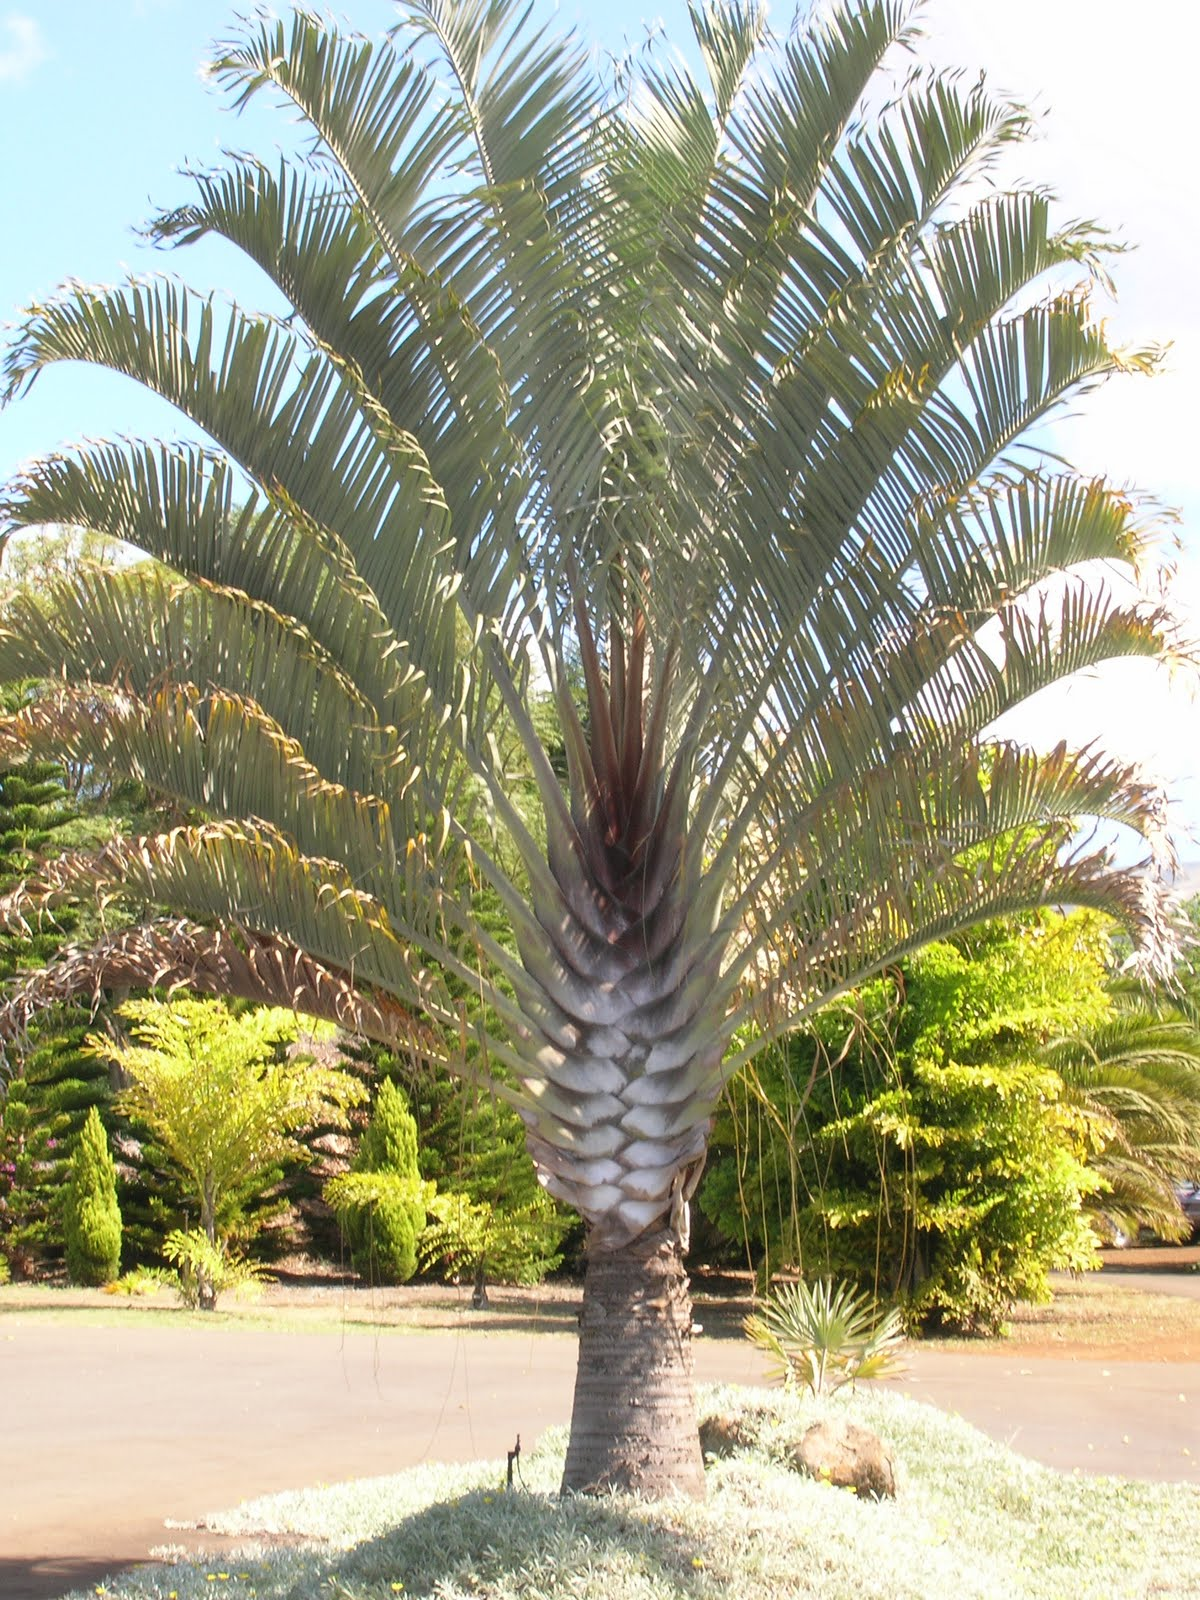 Home and garden triangle palm tree dypsis decaryi for Trees garden of jane delawney blogspot